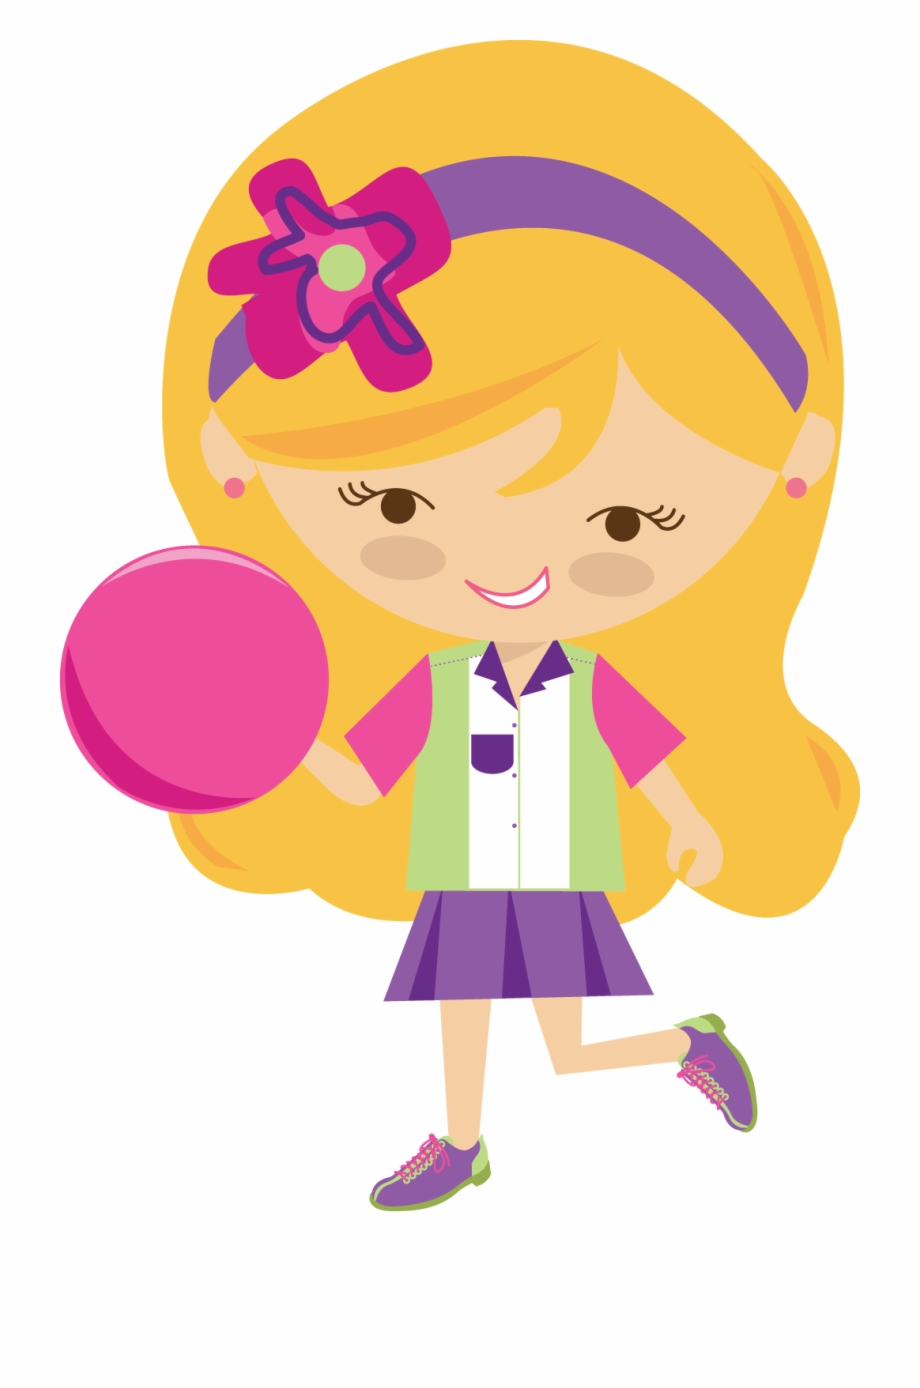 Bowling girl clipart clipart Little Girl Clipart Bowling Pencil And In Color Little - Free ... clipart